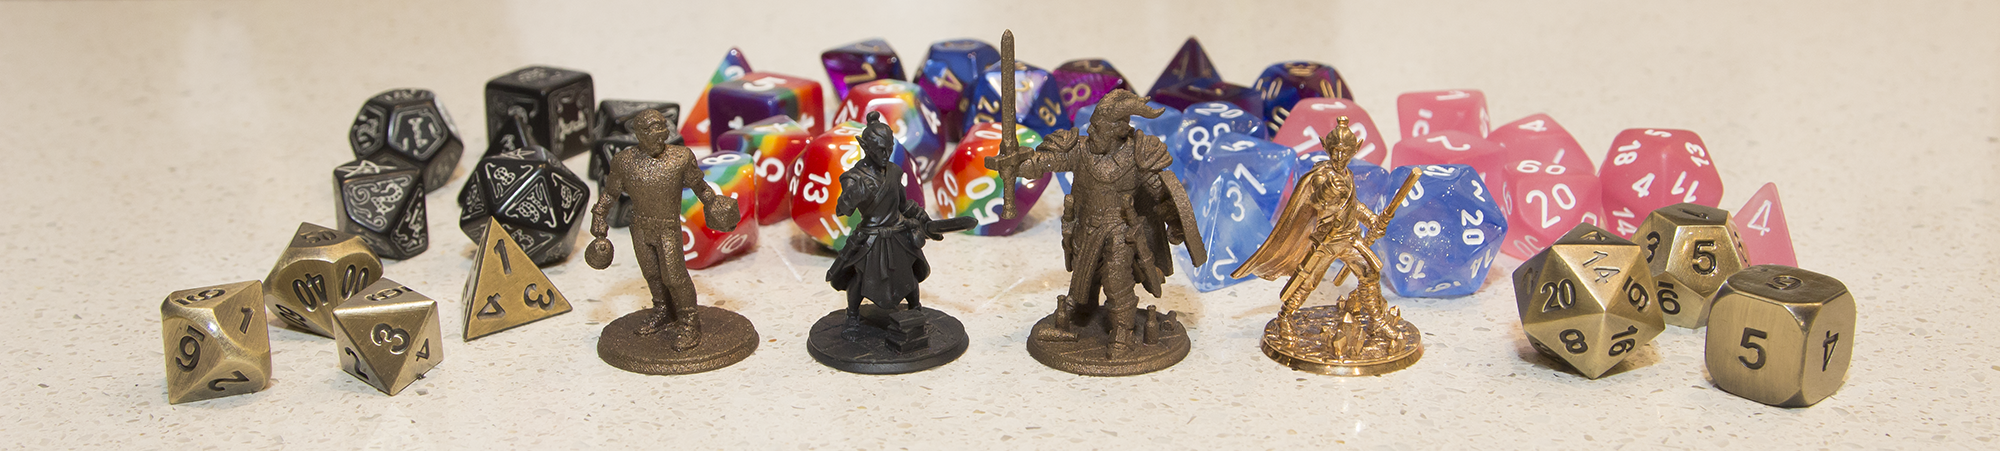 Miniatures L to R: ME (Lil Nicky - a birthday present from D&D friends), Rin the Wood Elf Monk, Benevolence the Tiefling Paladin, Bronze Rin.